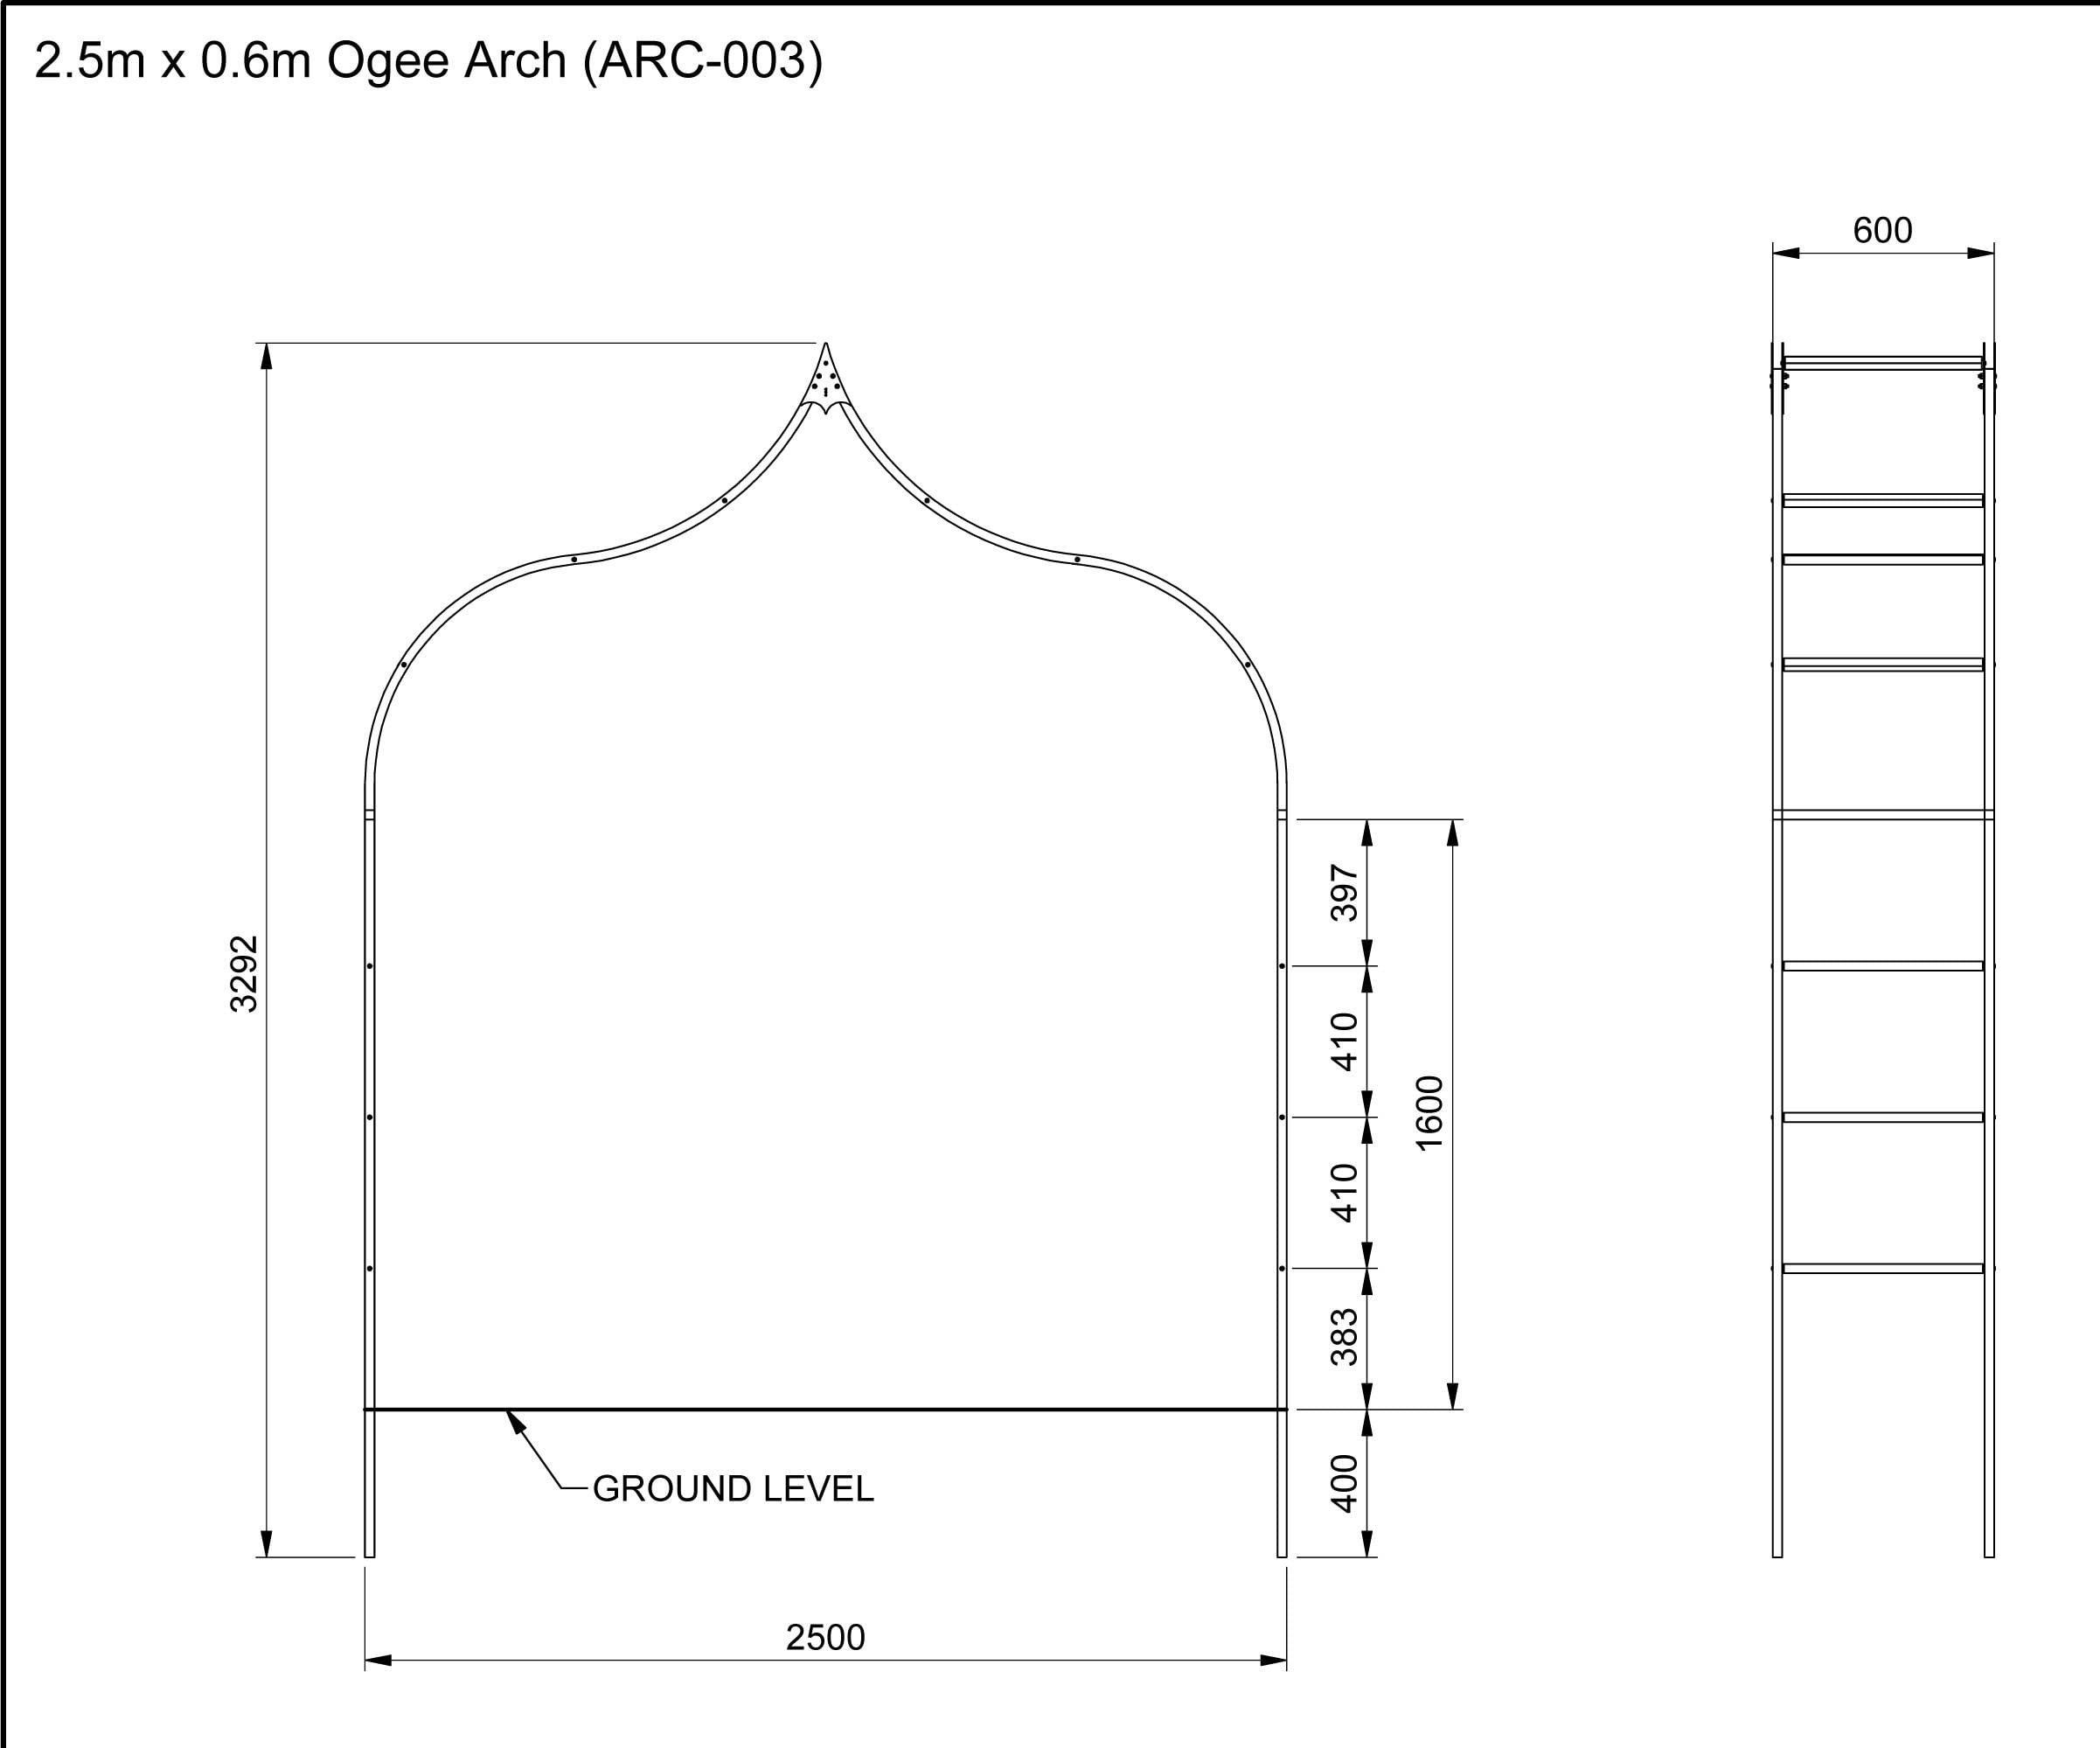 ARC-003 Dimensions CAD